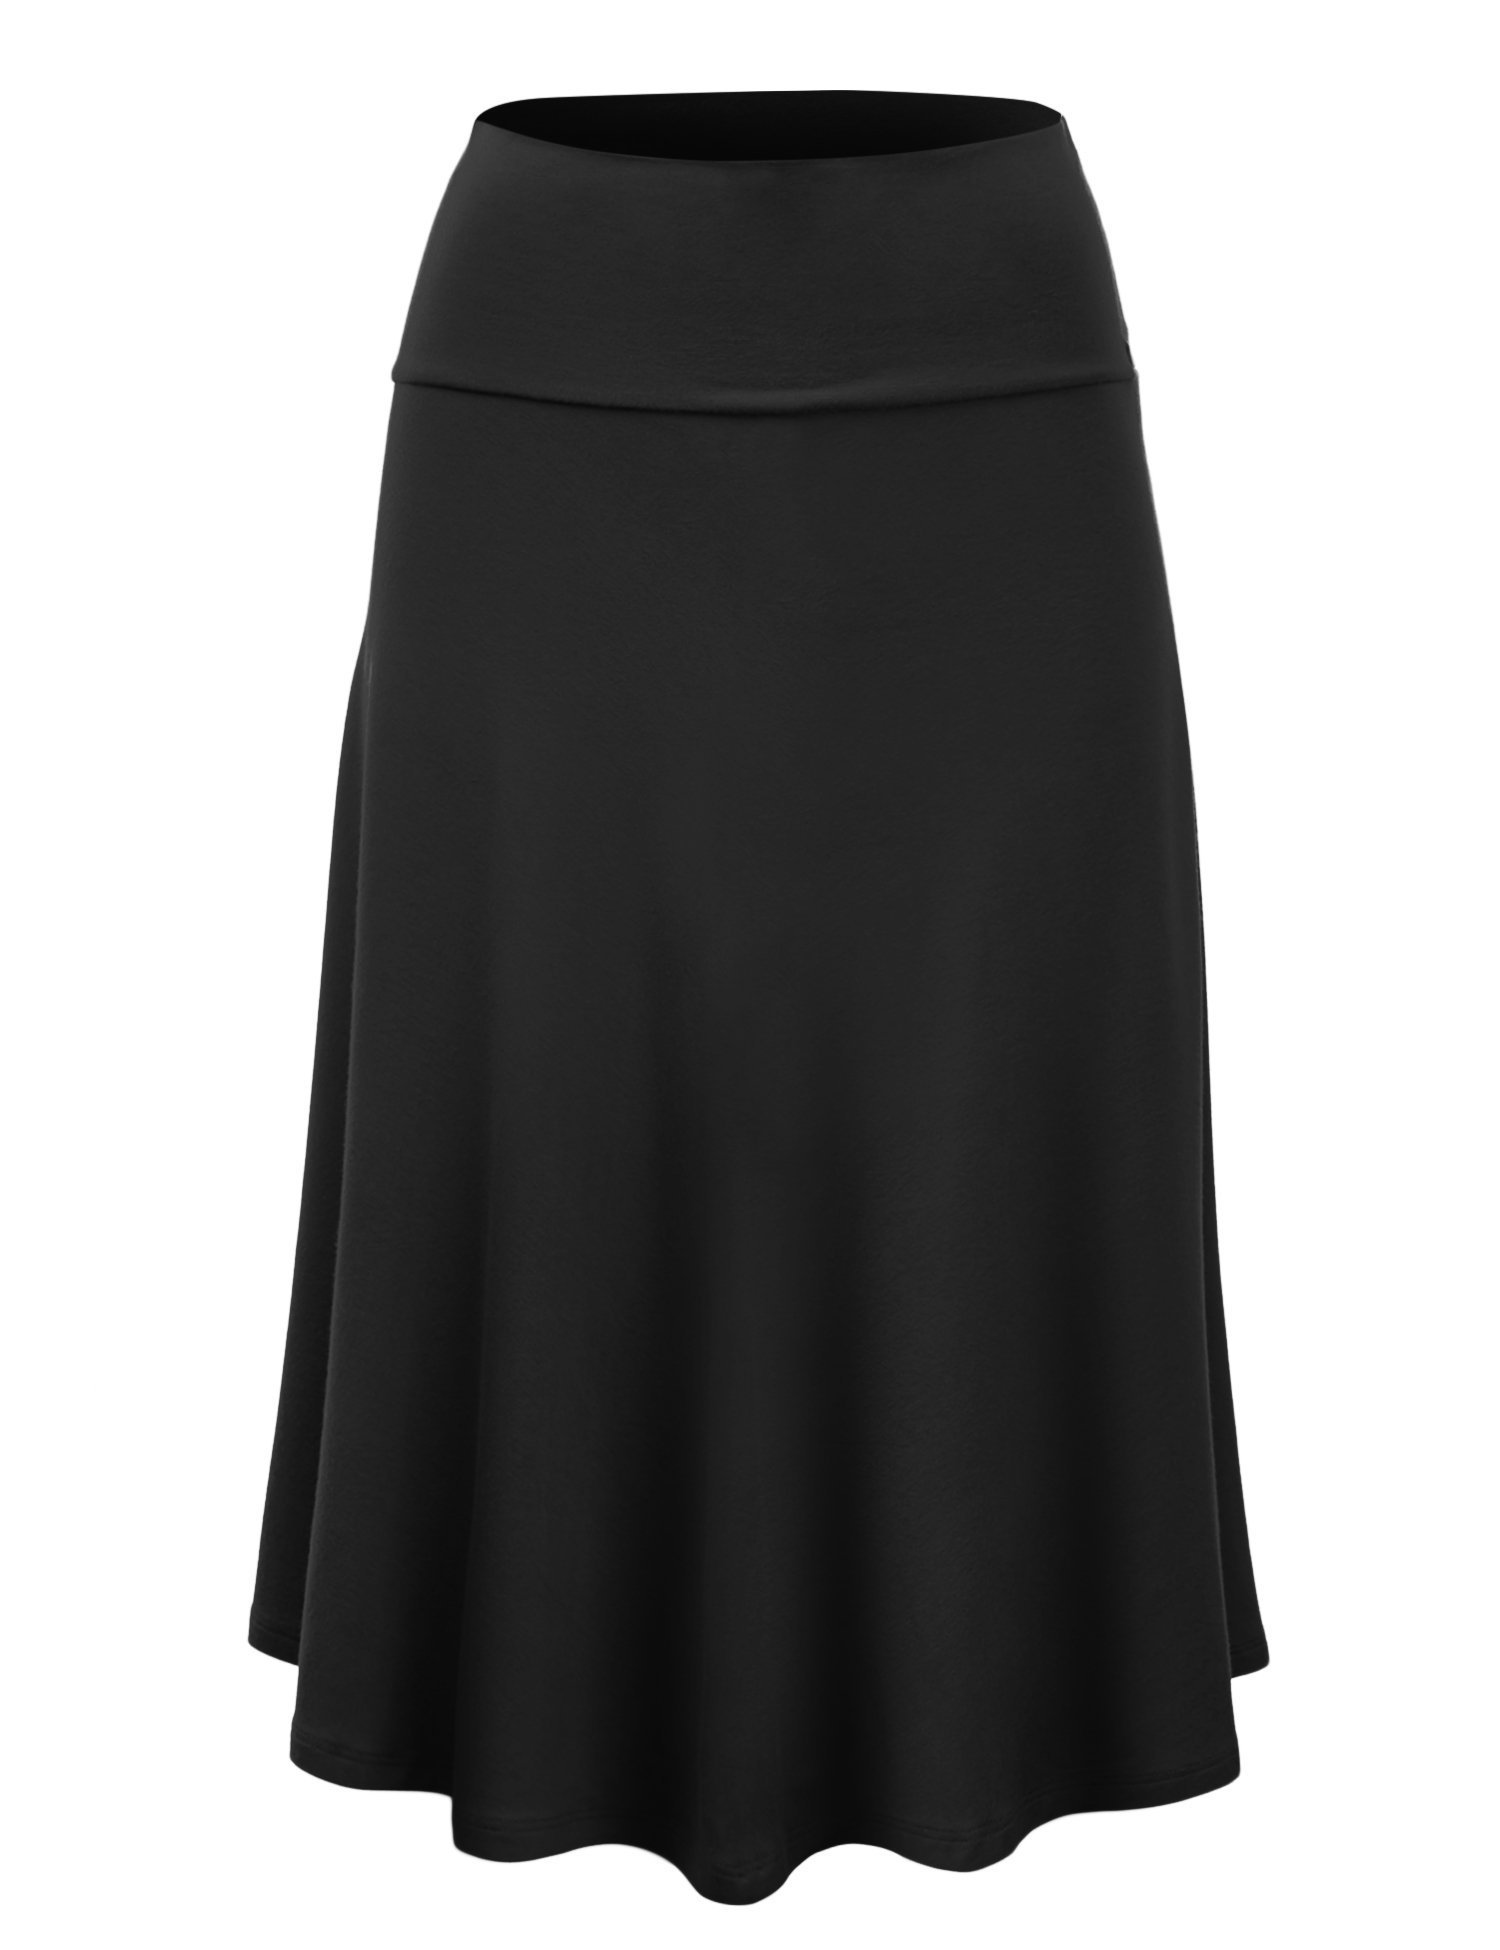 Lock and Love WB1105 Womens Lightweight Fold Over Flared Midi Skirt L Black by Lock and Love